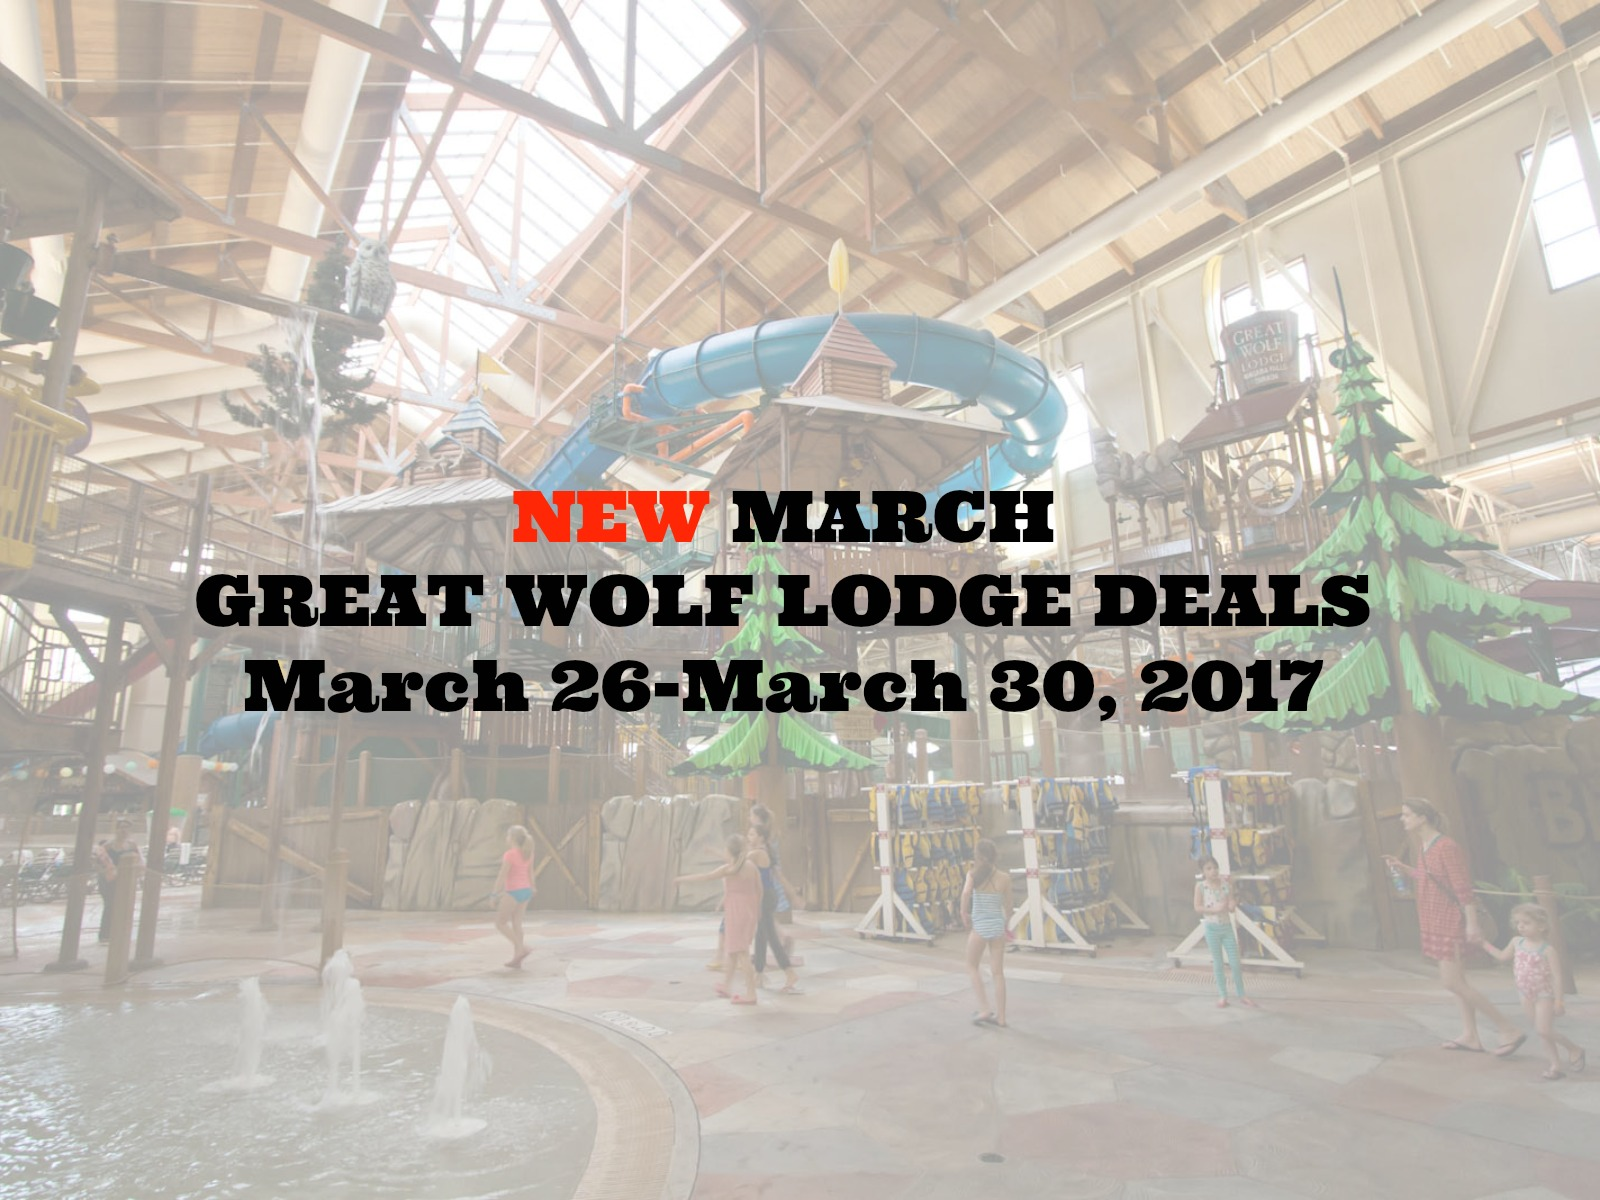 NEW MARCH GREAT WOLF LODGE DEALS (March 26-30, 2017)